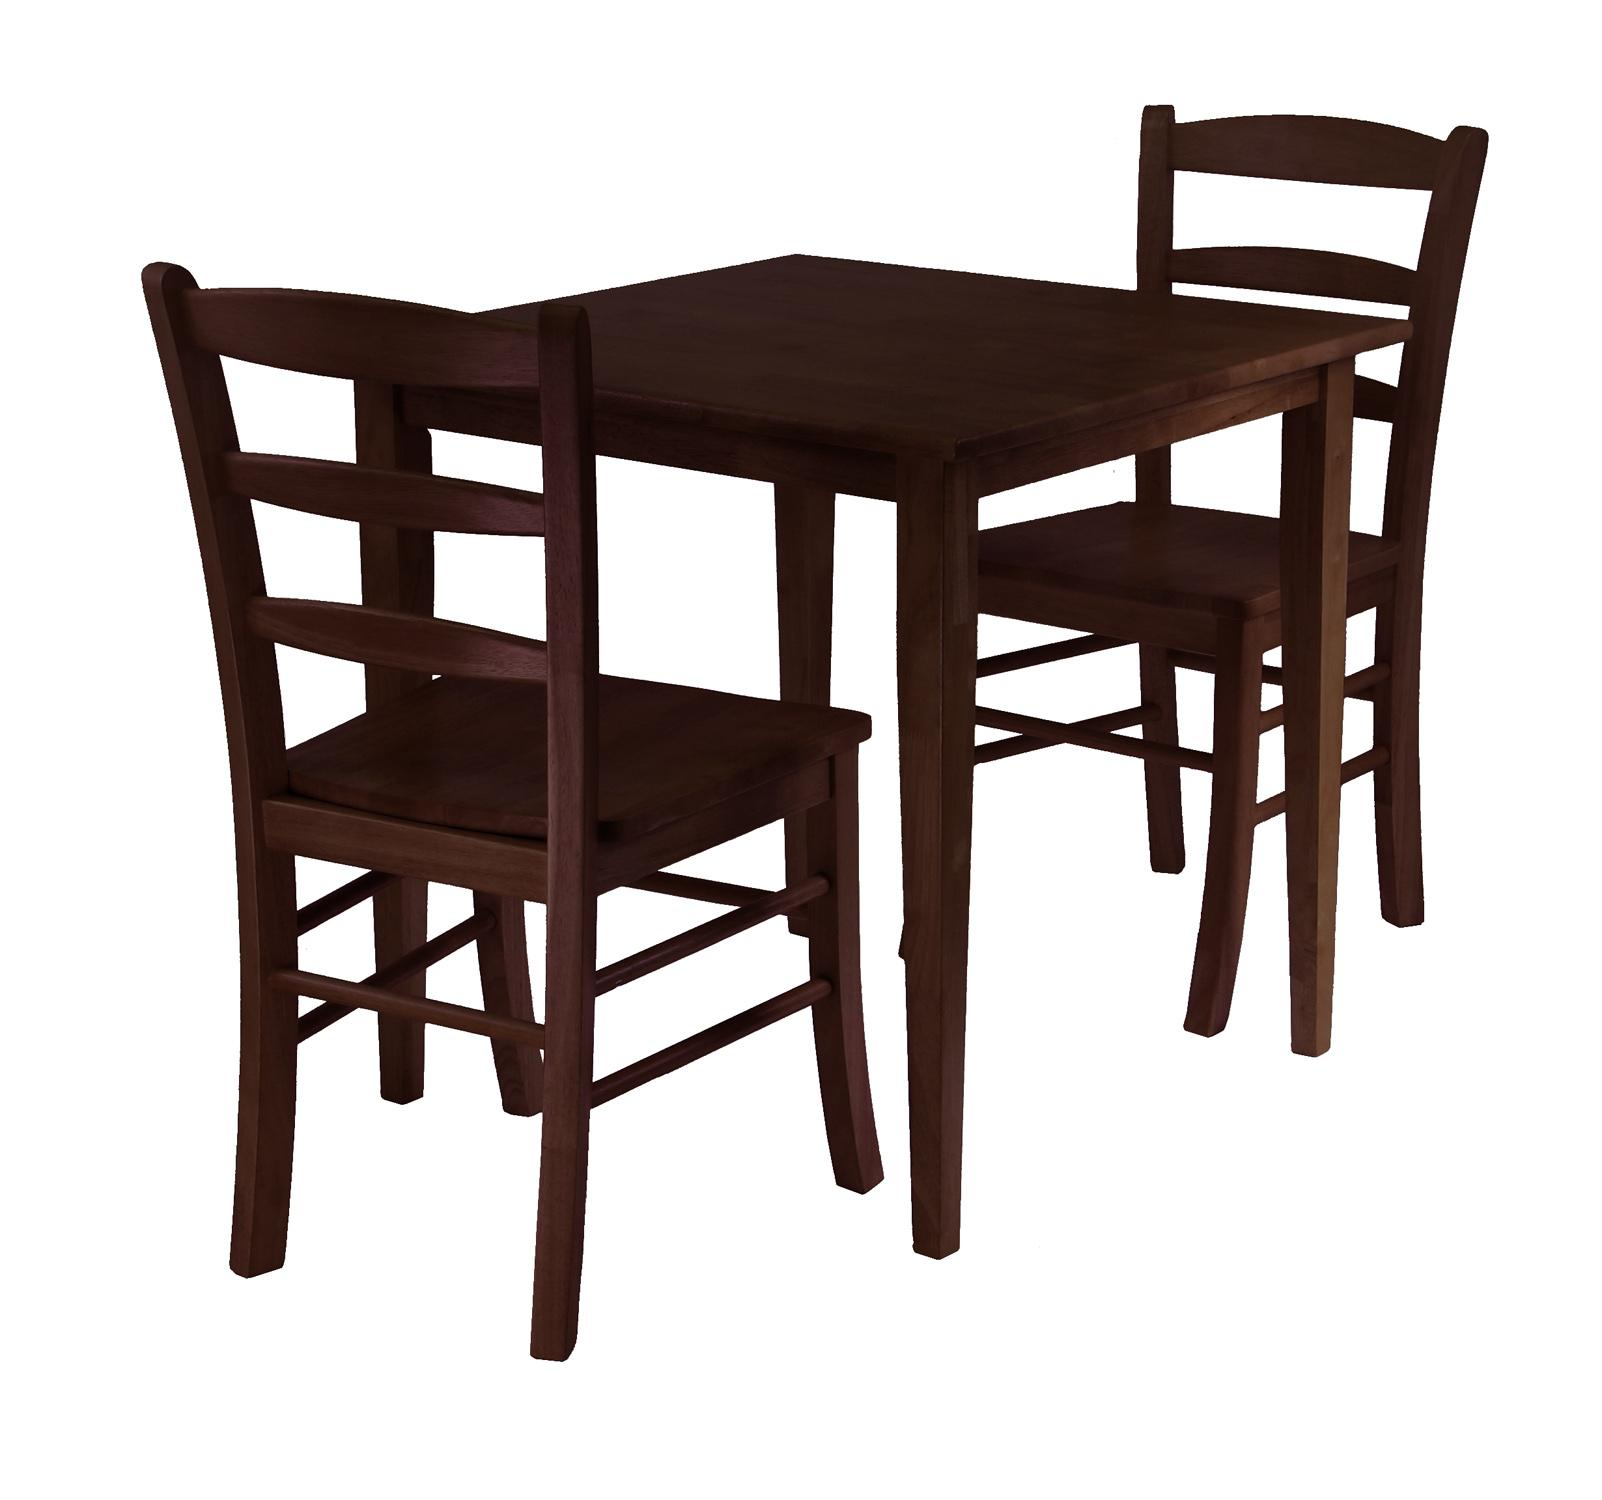 groveland chairs square kitchen tables Groveland 3pc Square Dining Table with 2 Chairs